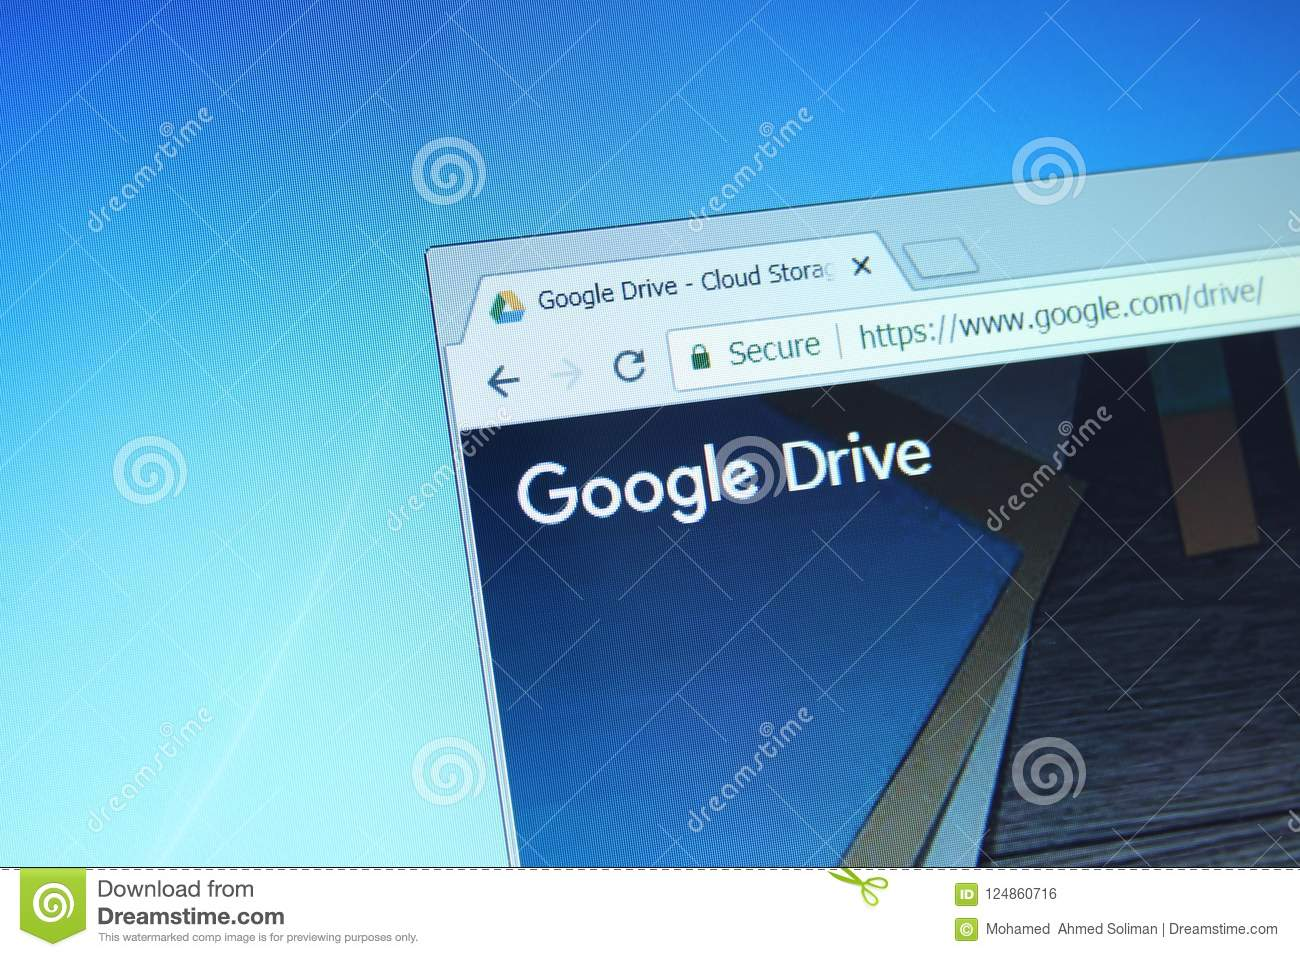 download from google drive to computer